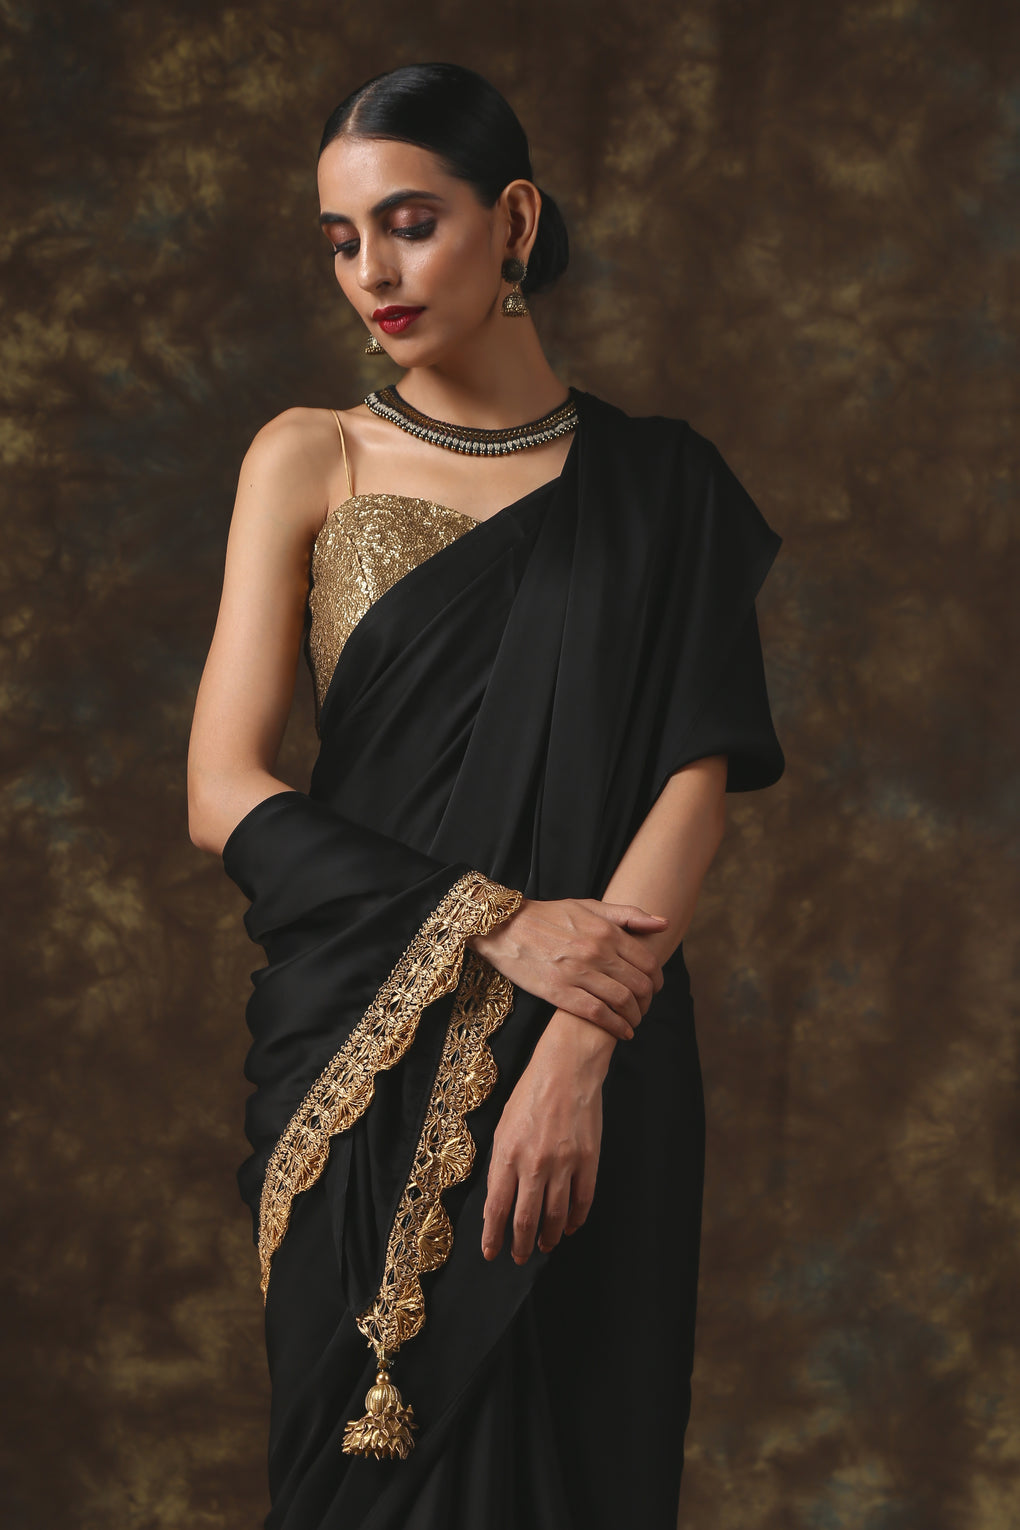 Luxurious Black Satin Saree with Dull Gold Lace and Pendants